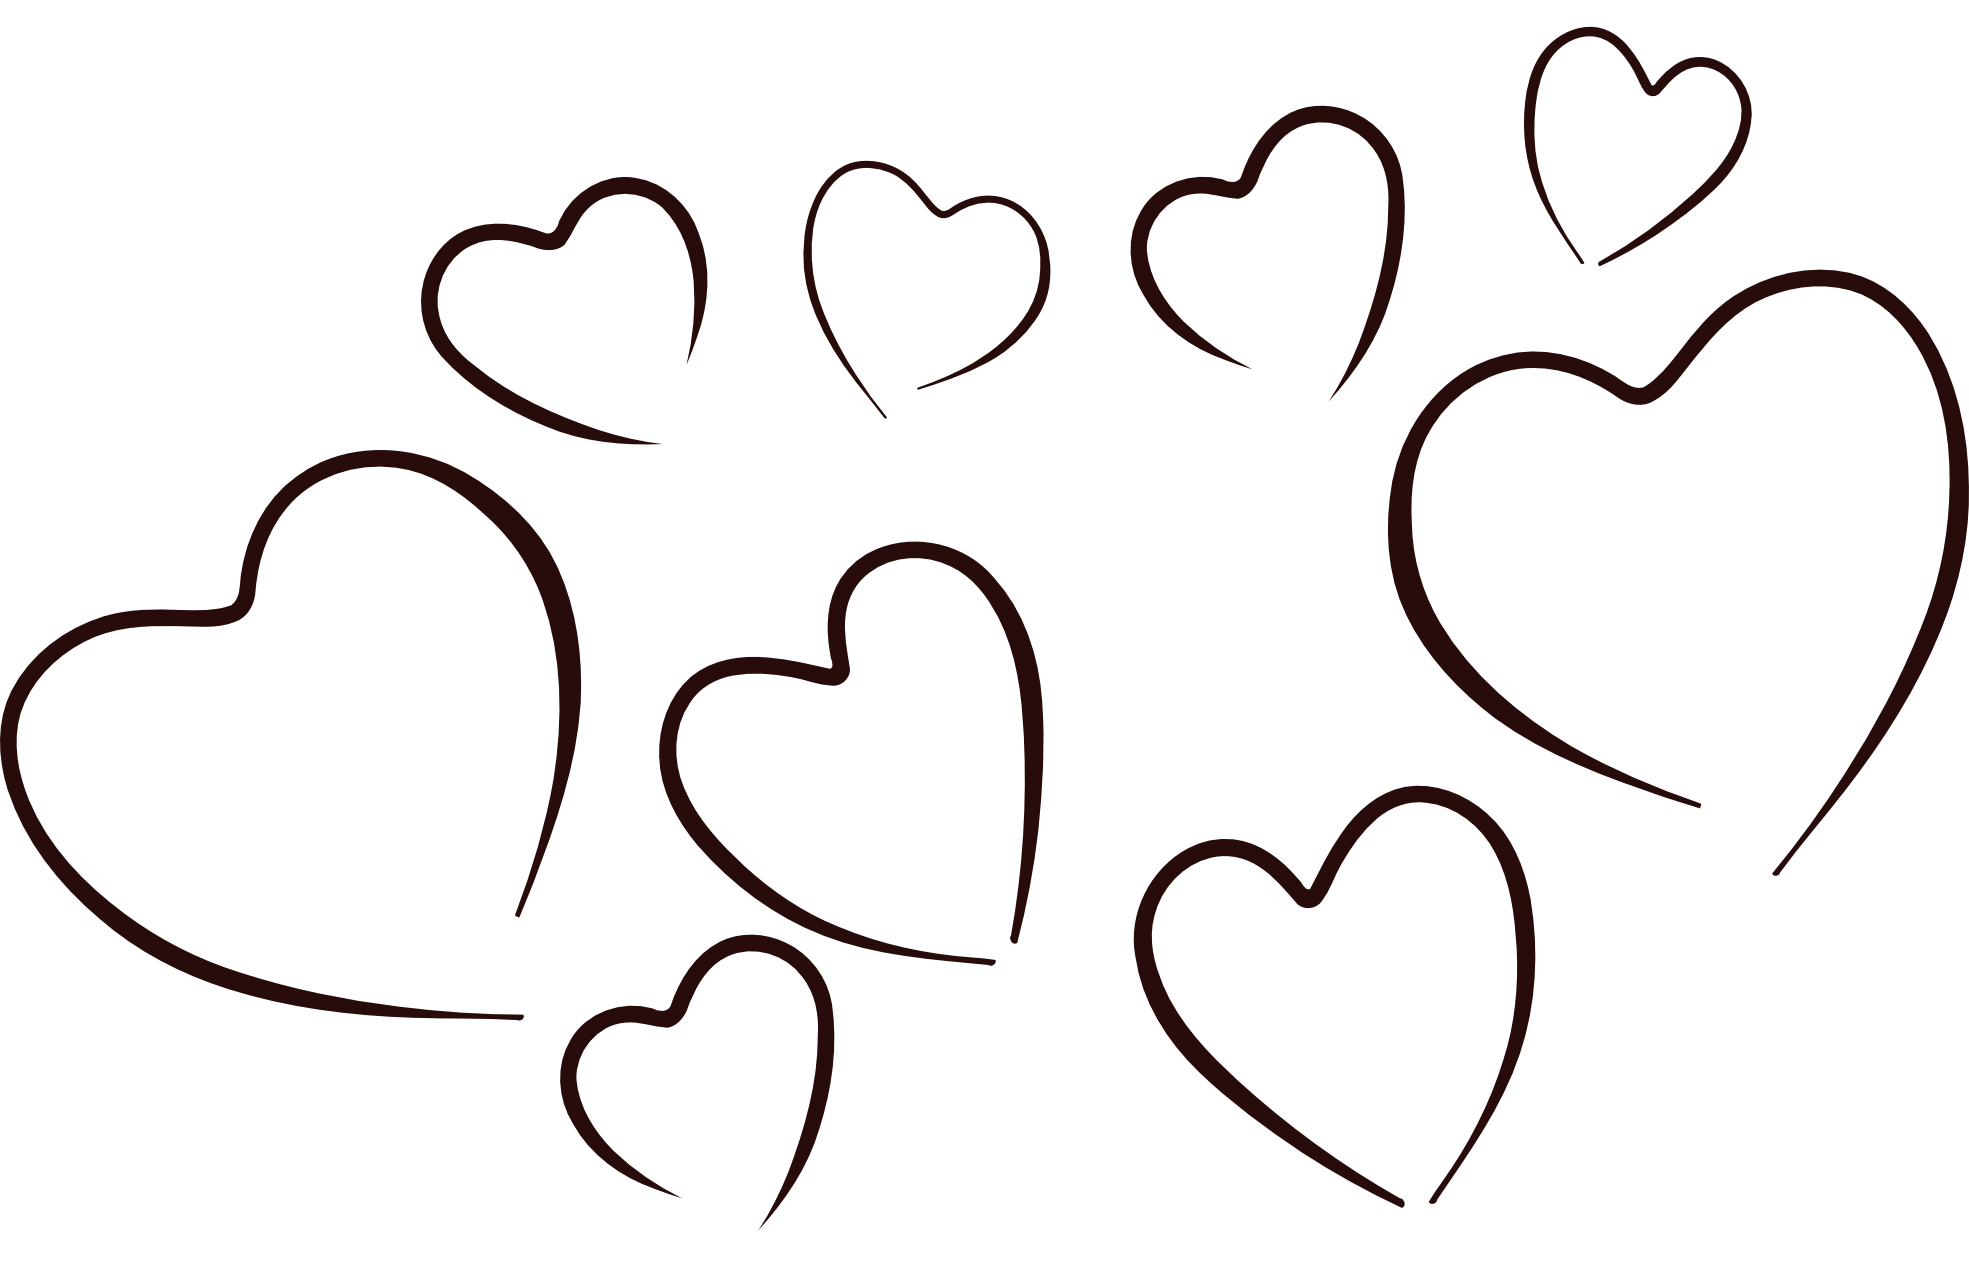 Heart black and white heart black and white heart clipart 4.